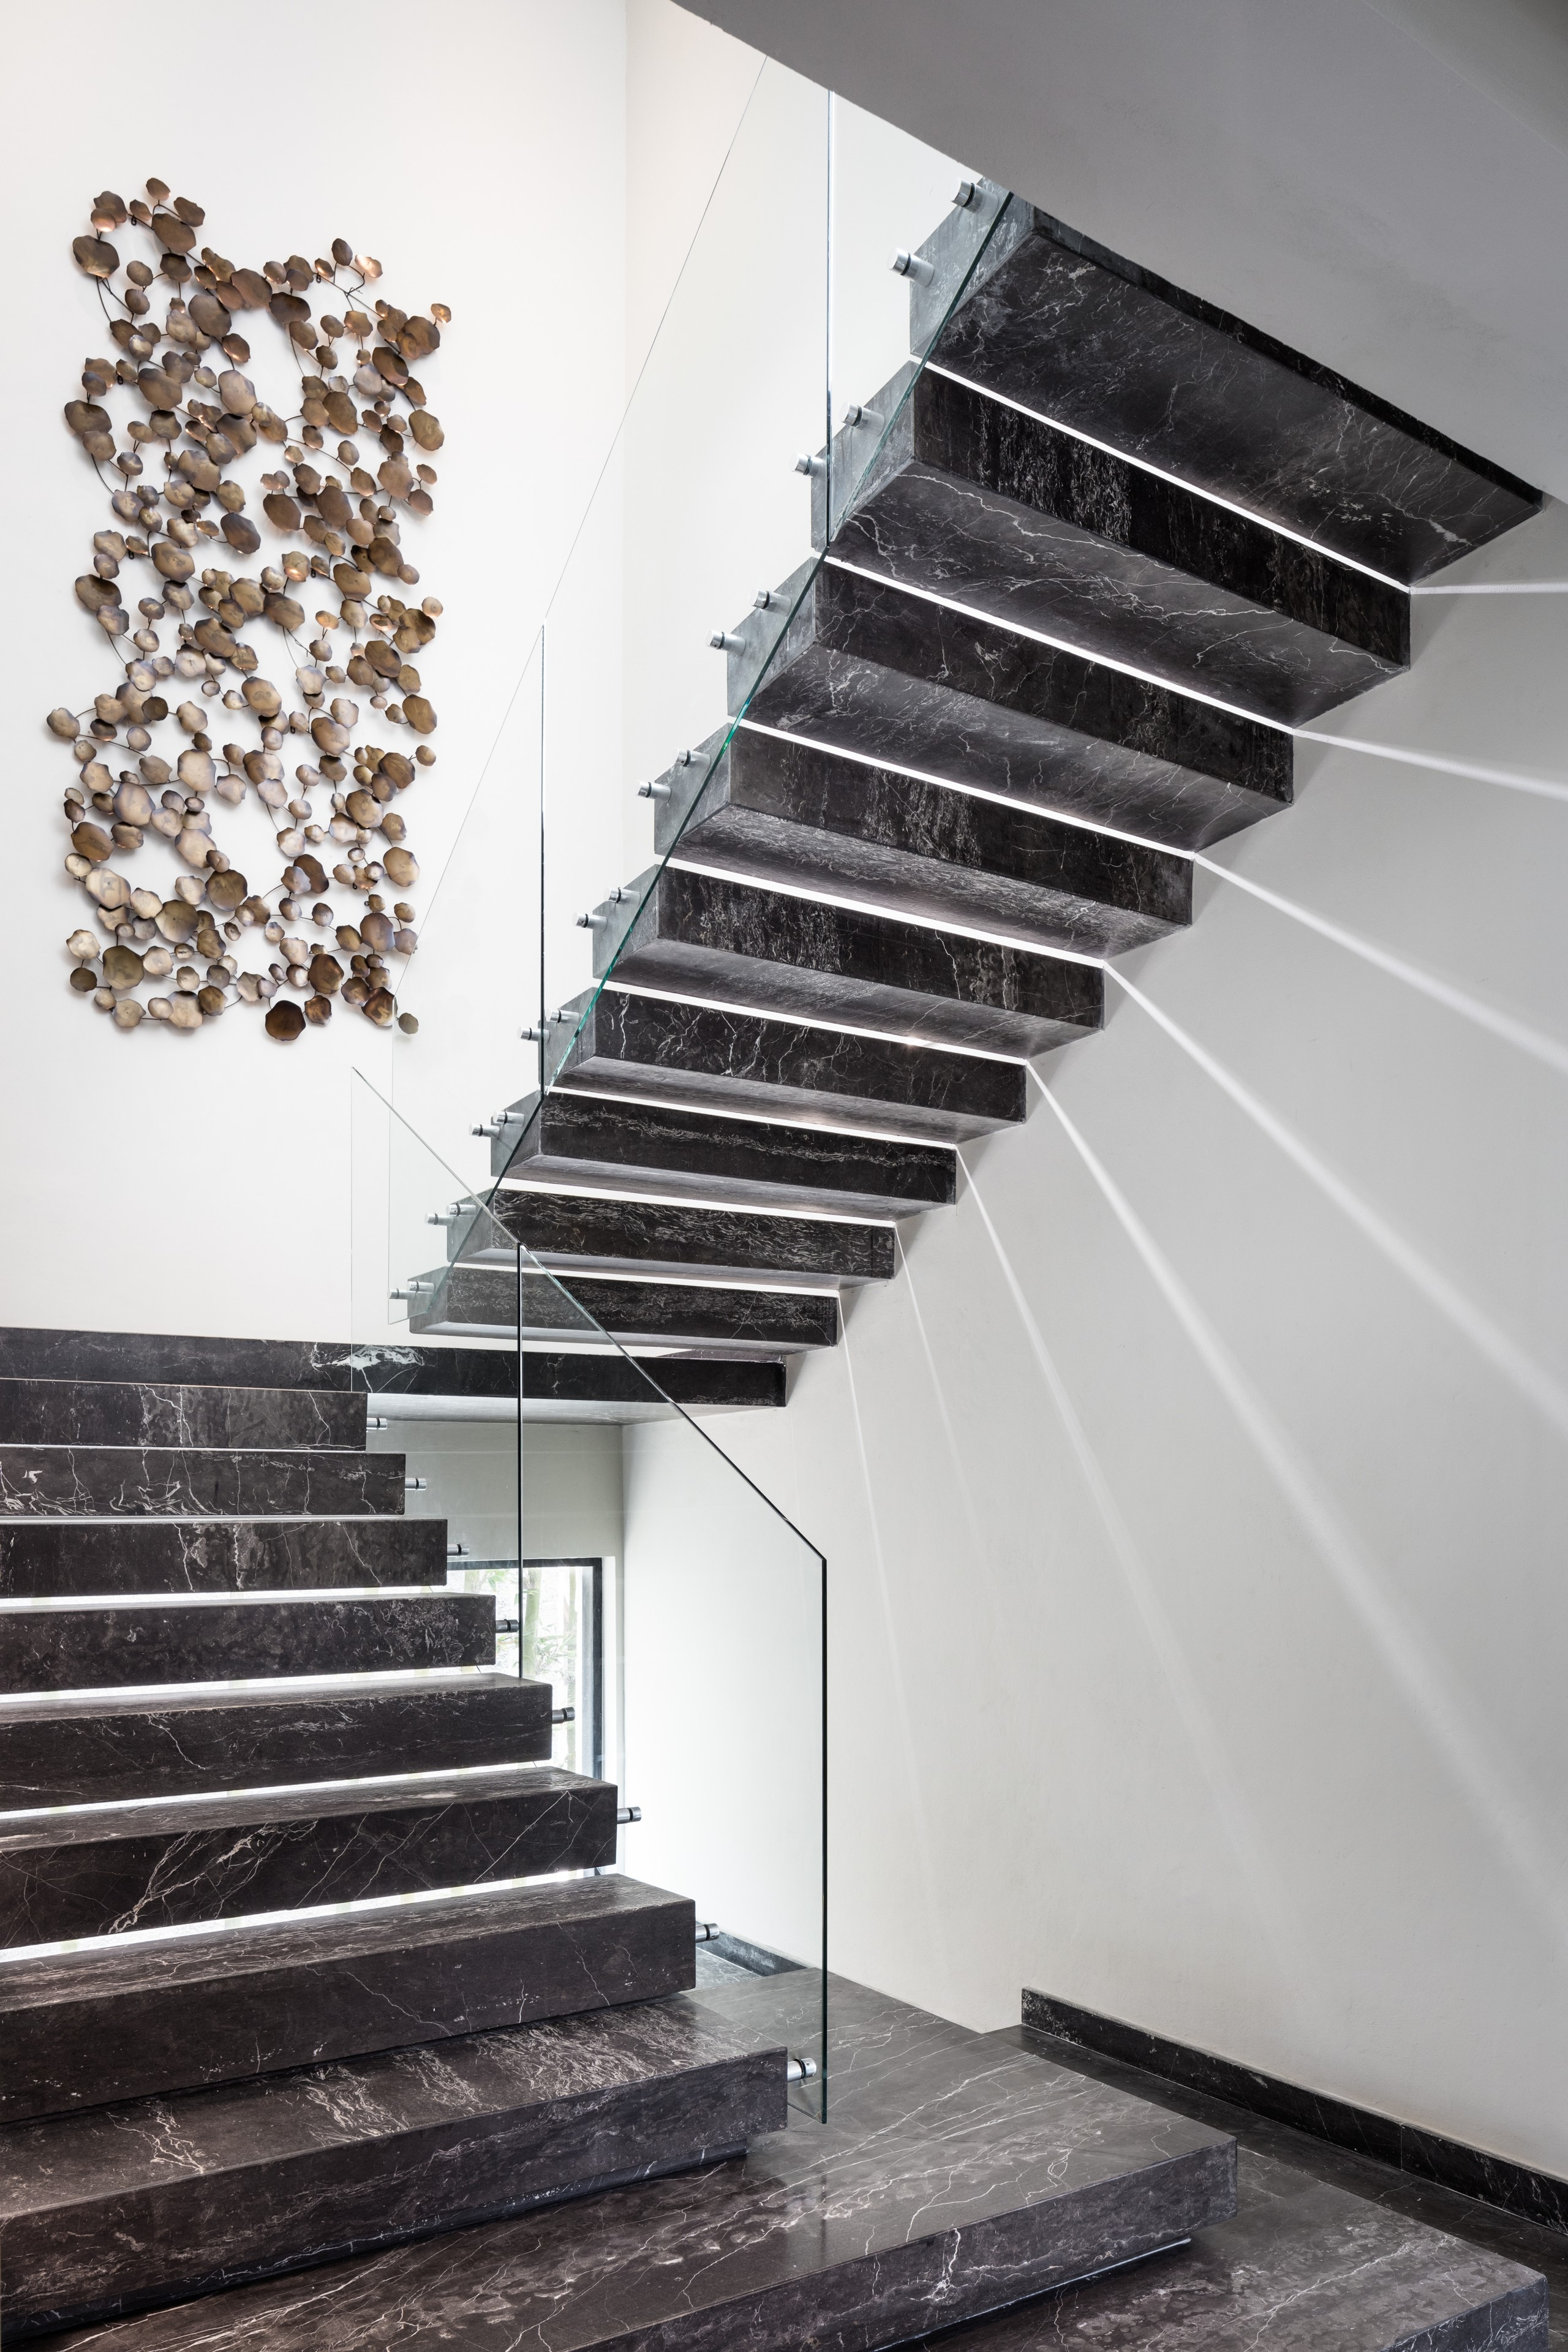 75 Beautiful Marble Staircase Pictures Ideas September 2020 | Black Granite Staircase Designs | India Staircase | Contemporary | Italian Marble Step | Double Staircase | Wood Girl